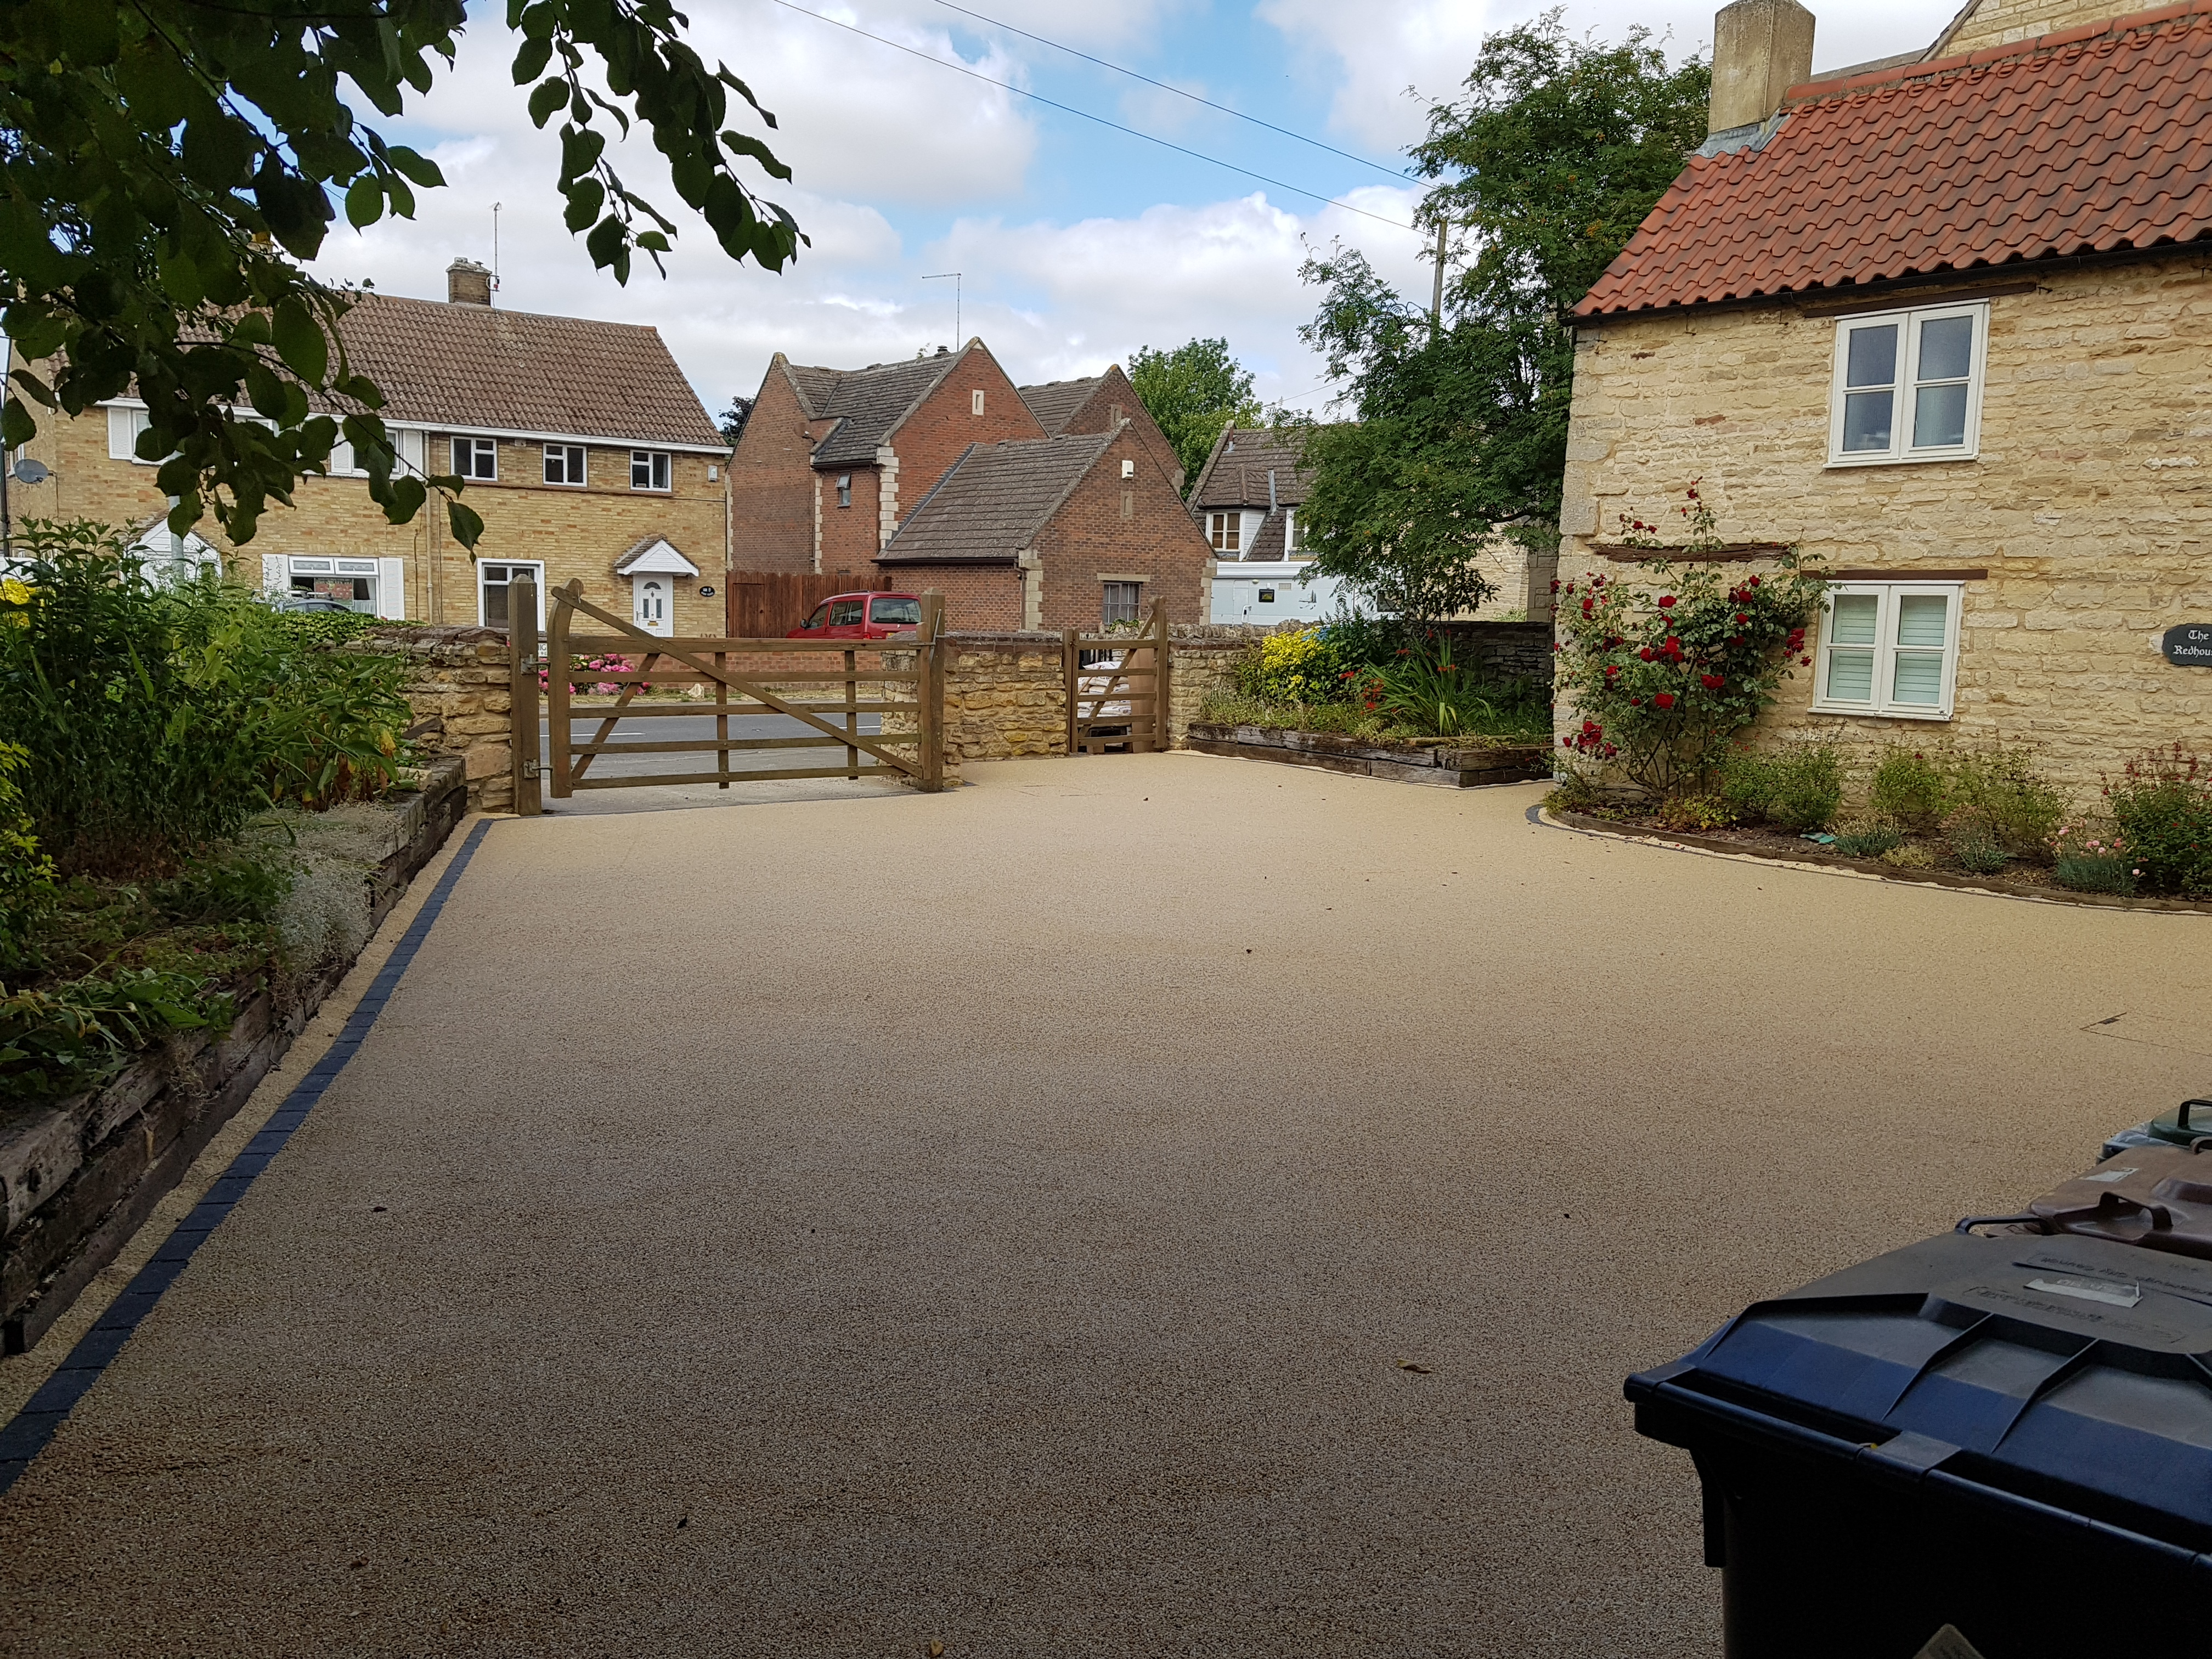 Driveway in Maxey Peterborough